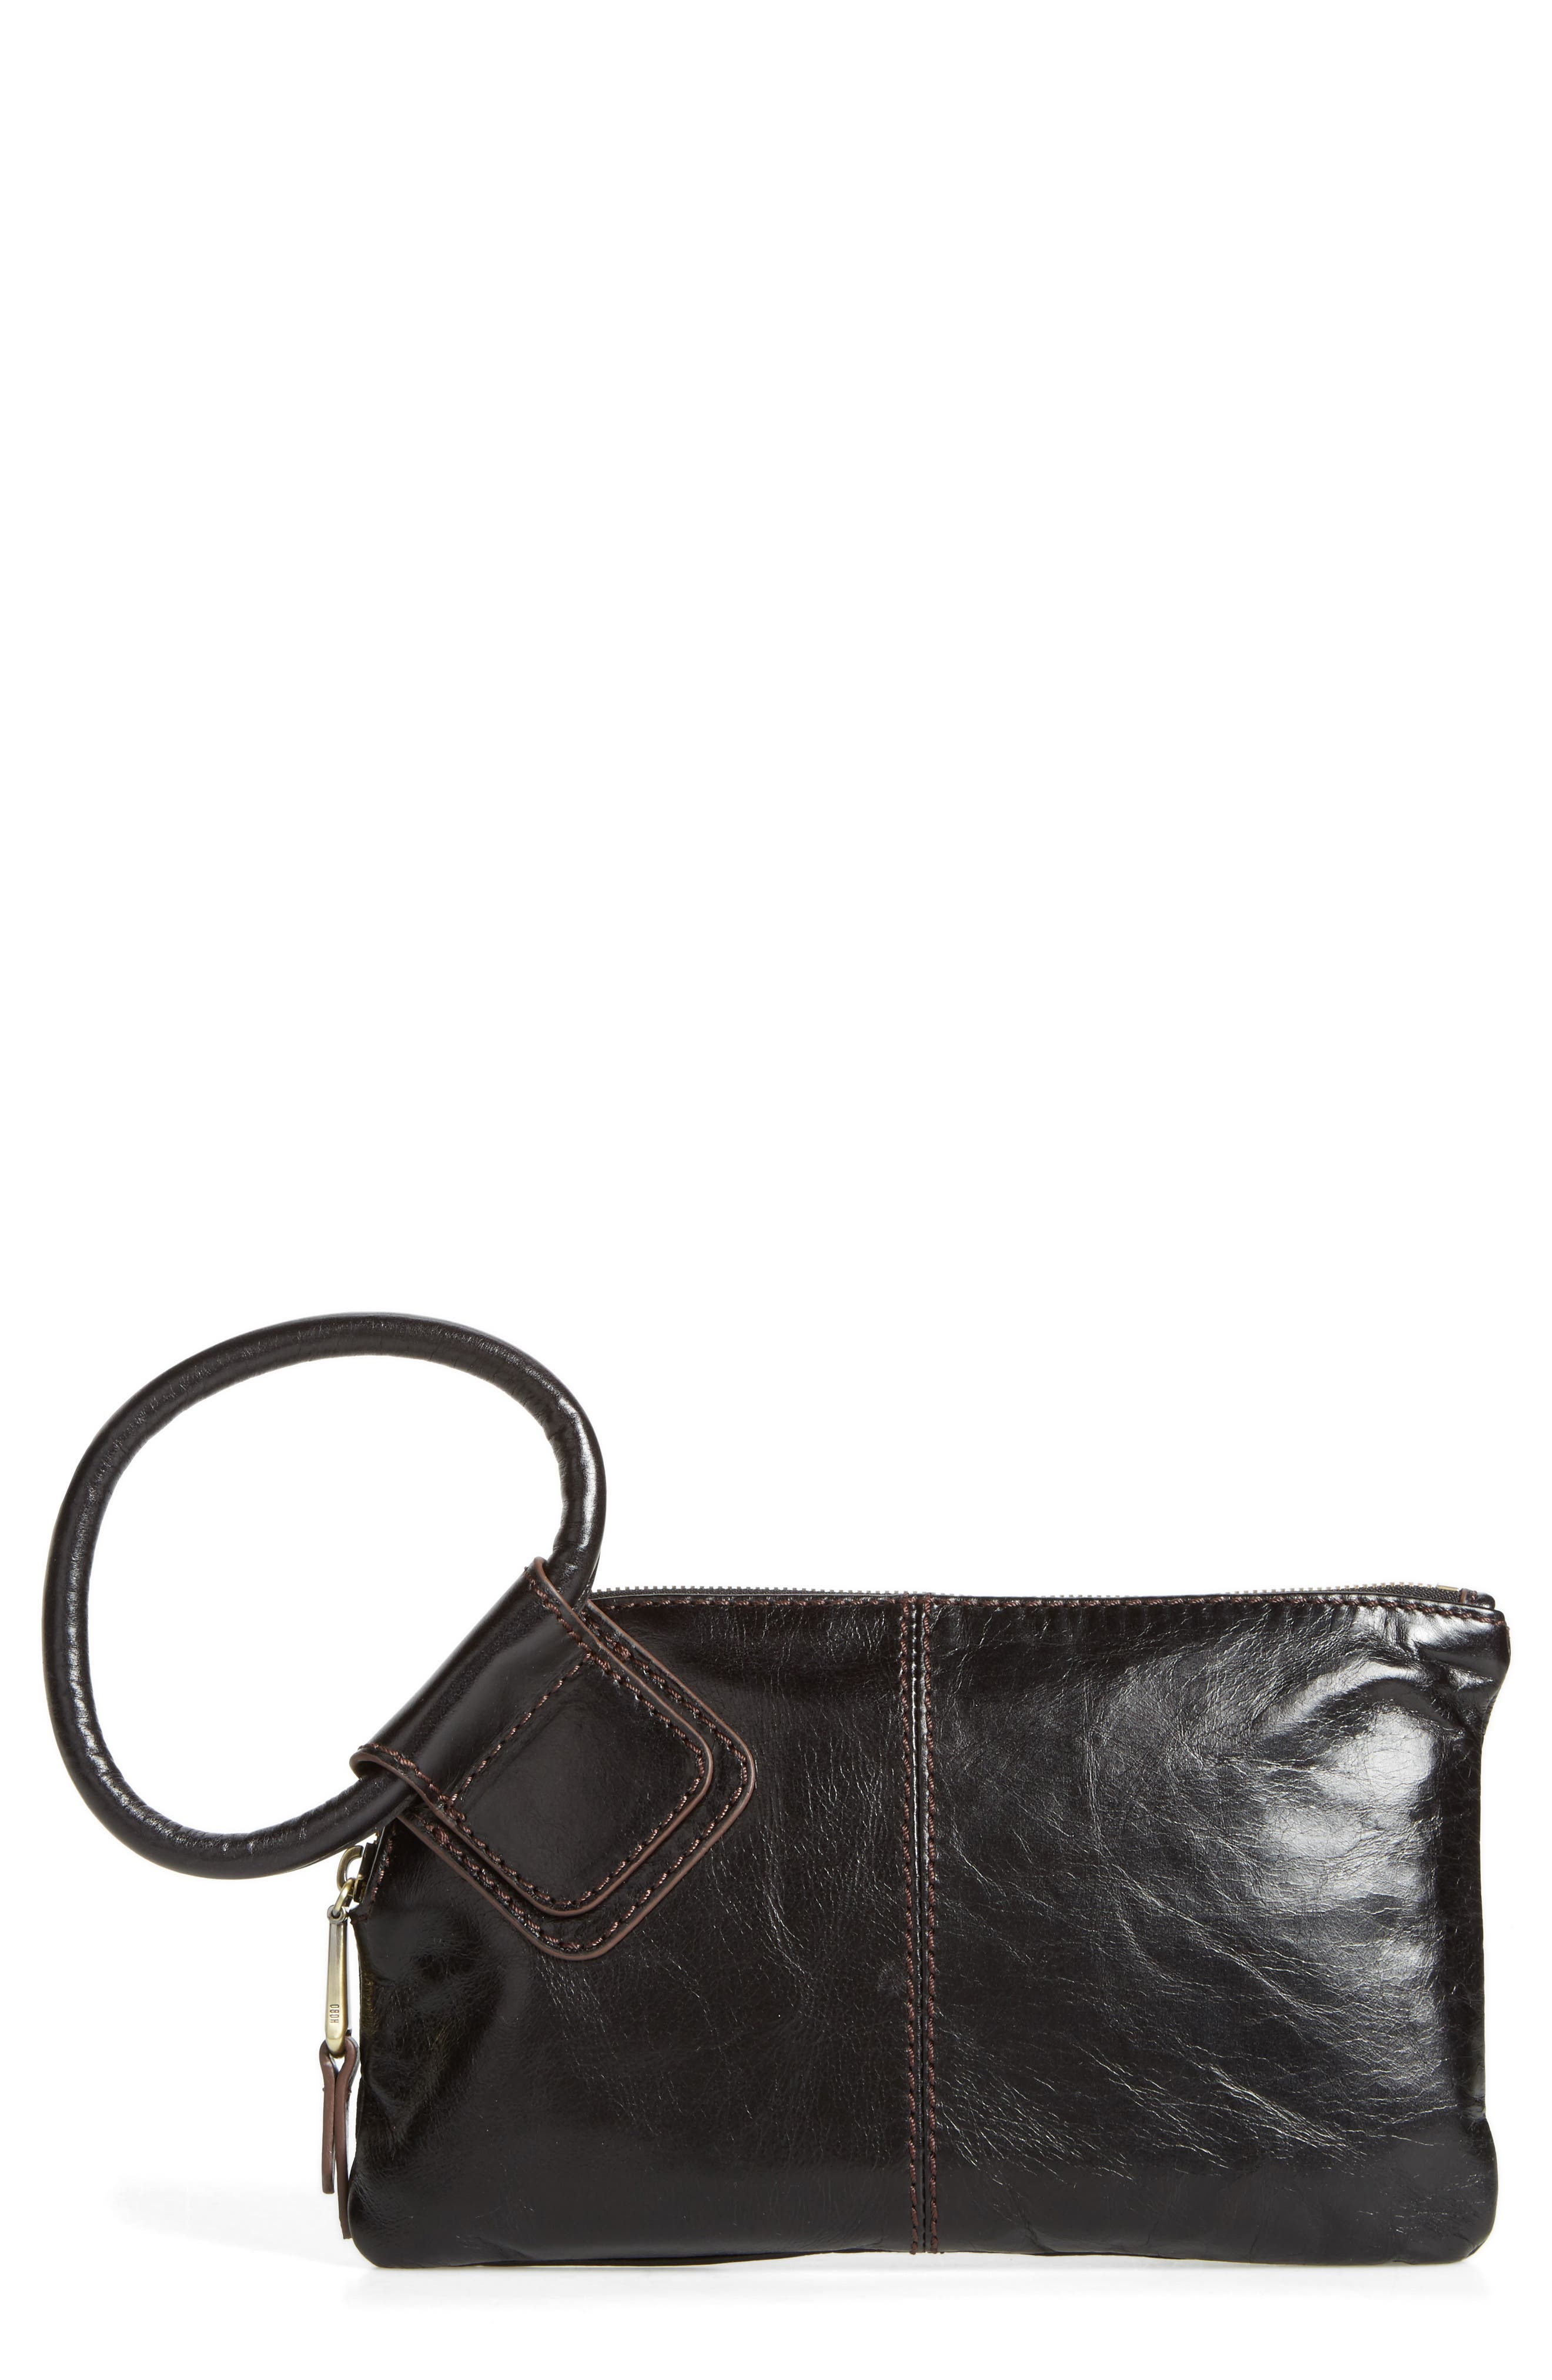 Hobo Sable Calfskin Leather Clutch